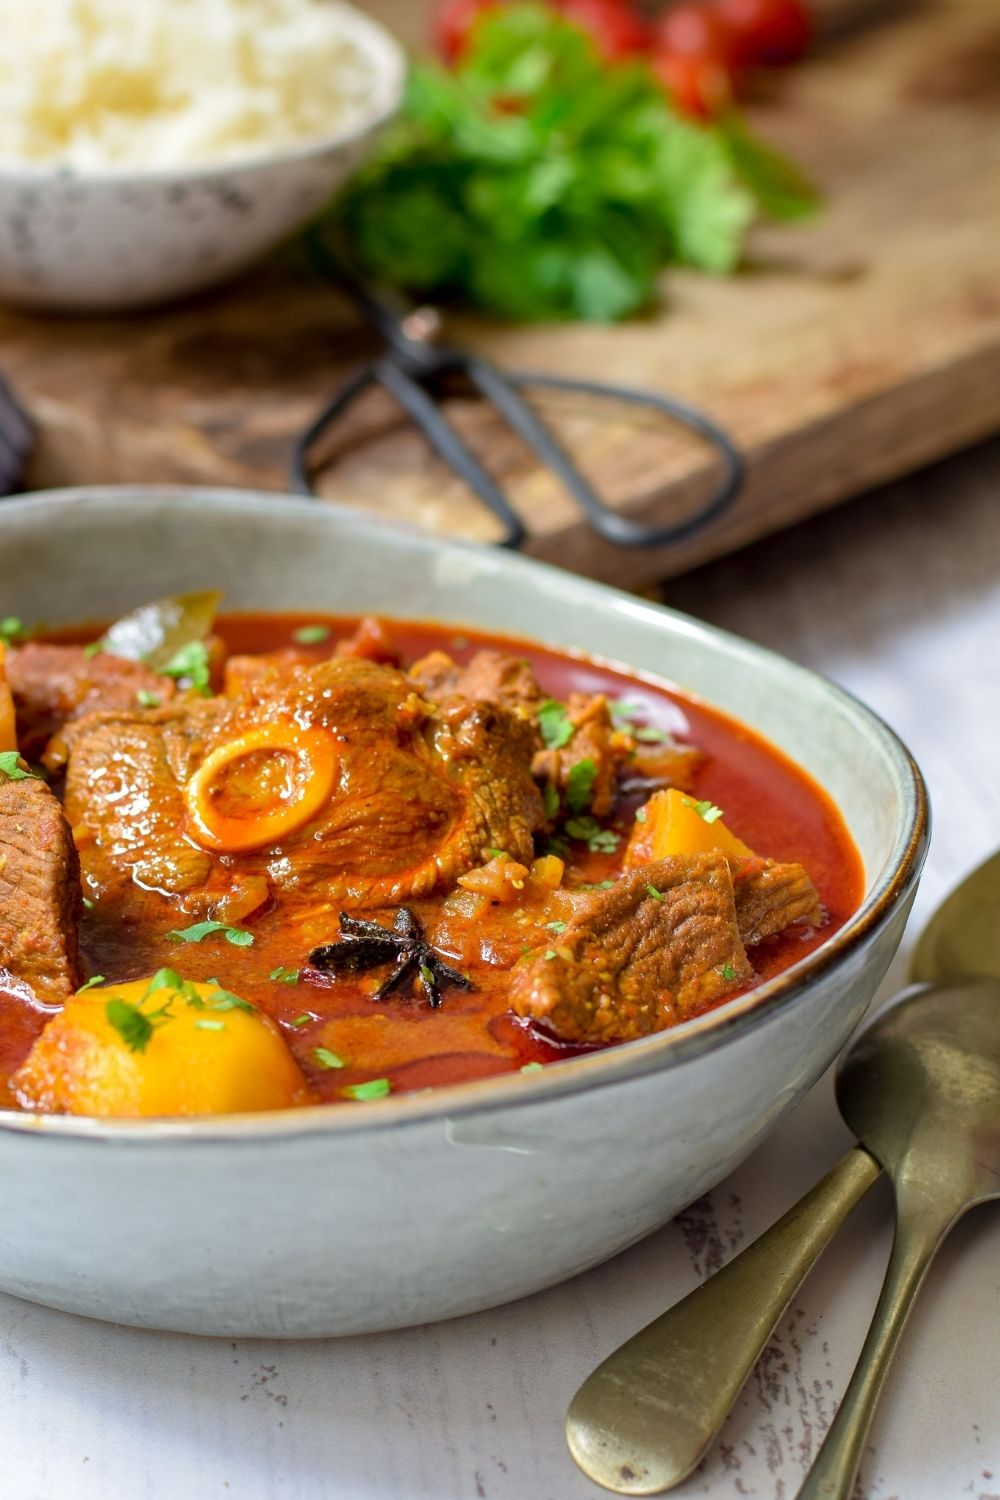 Durban Lamb Curry in a grey bowl